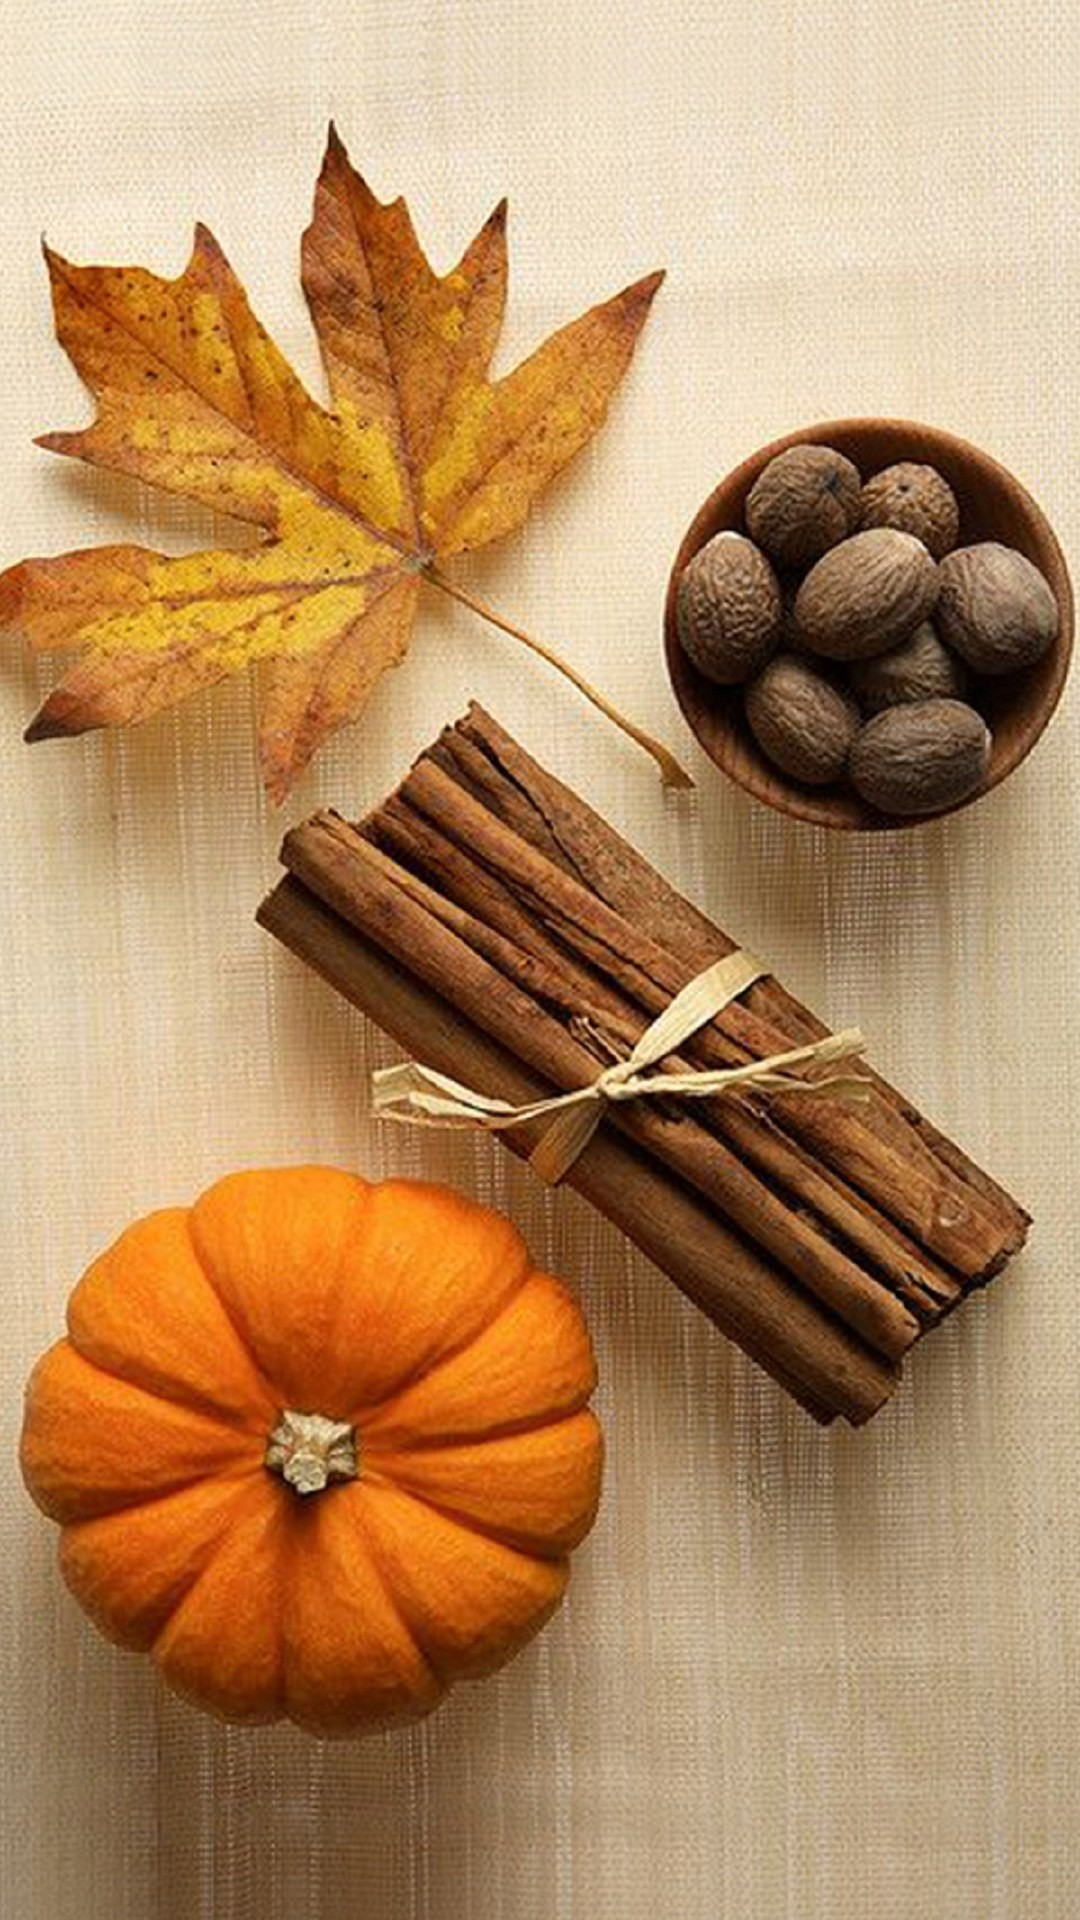 Pumpkin & Spices iPhone wallpapers. Tap to see more Fall season iPhone  wallpapers, lockscreen